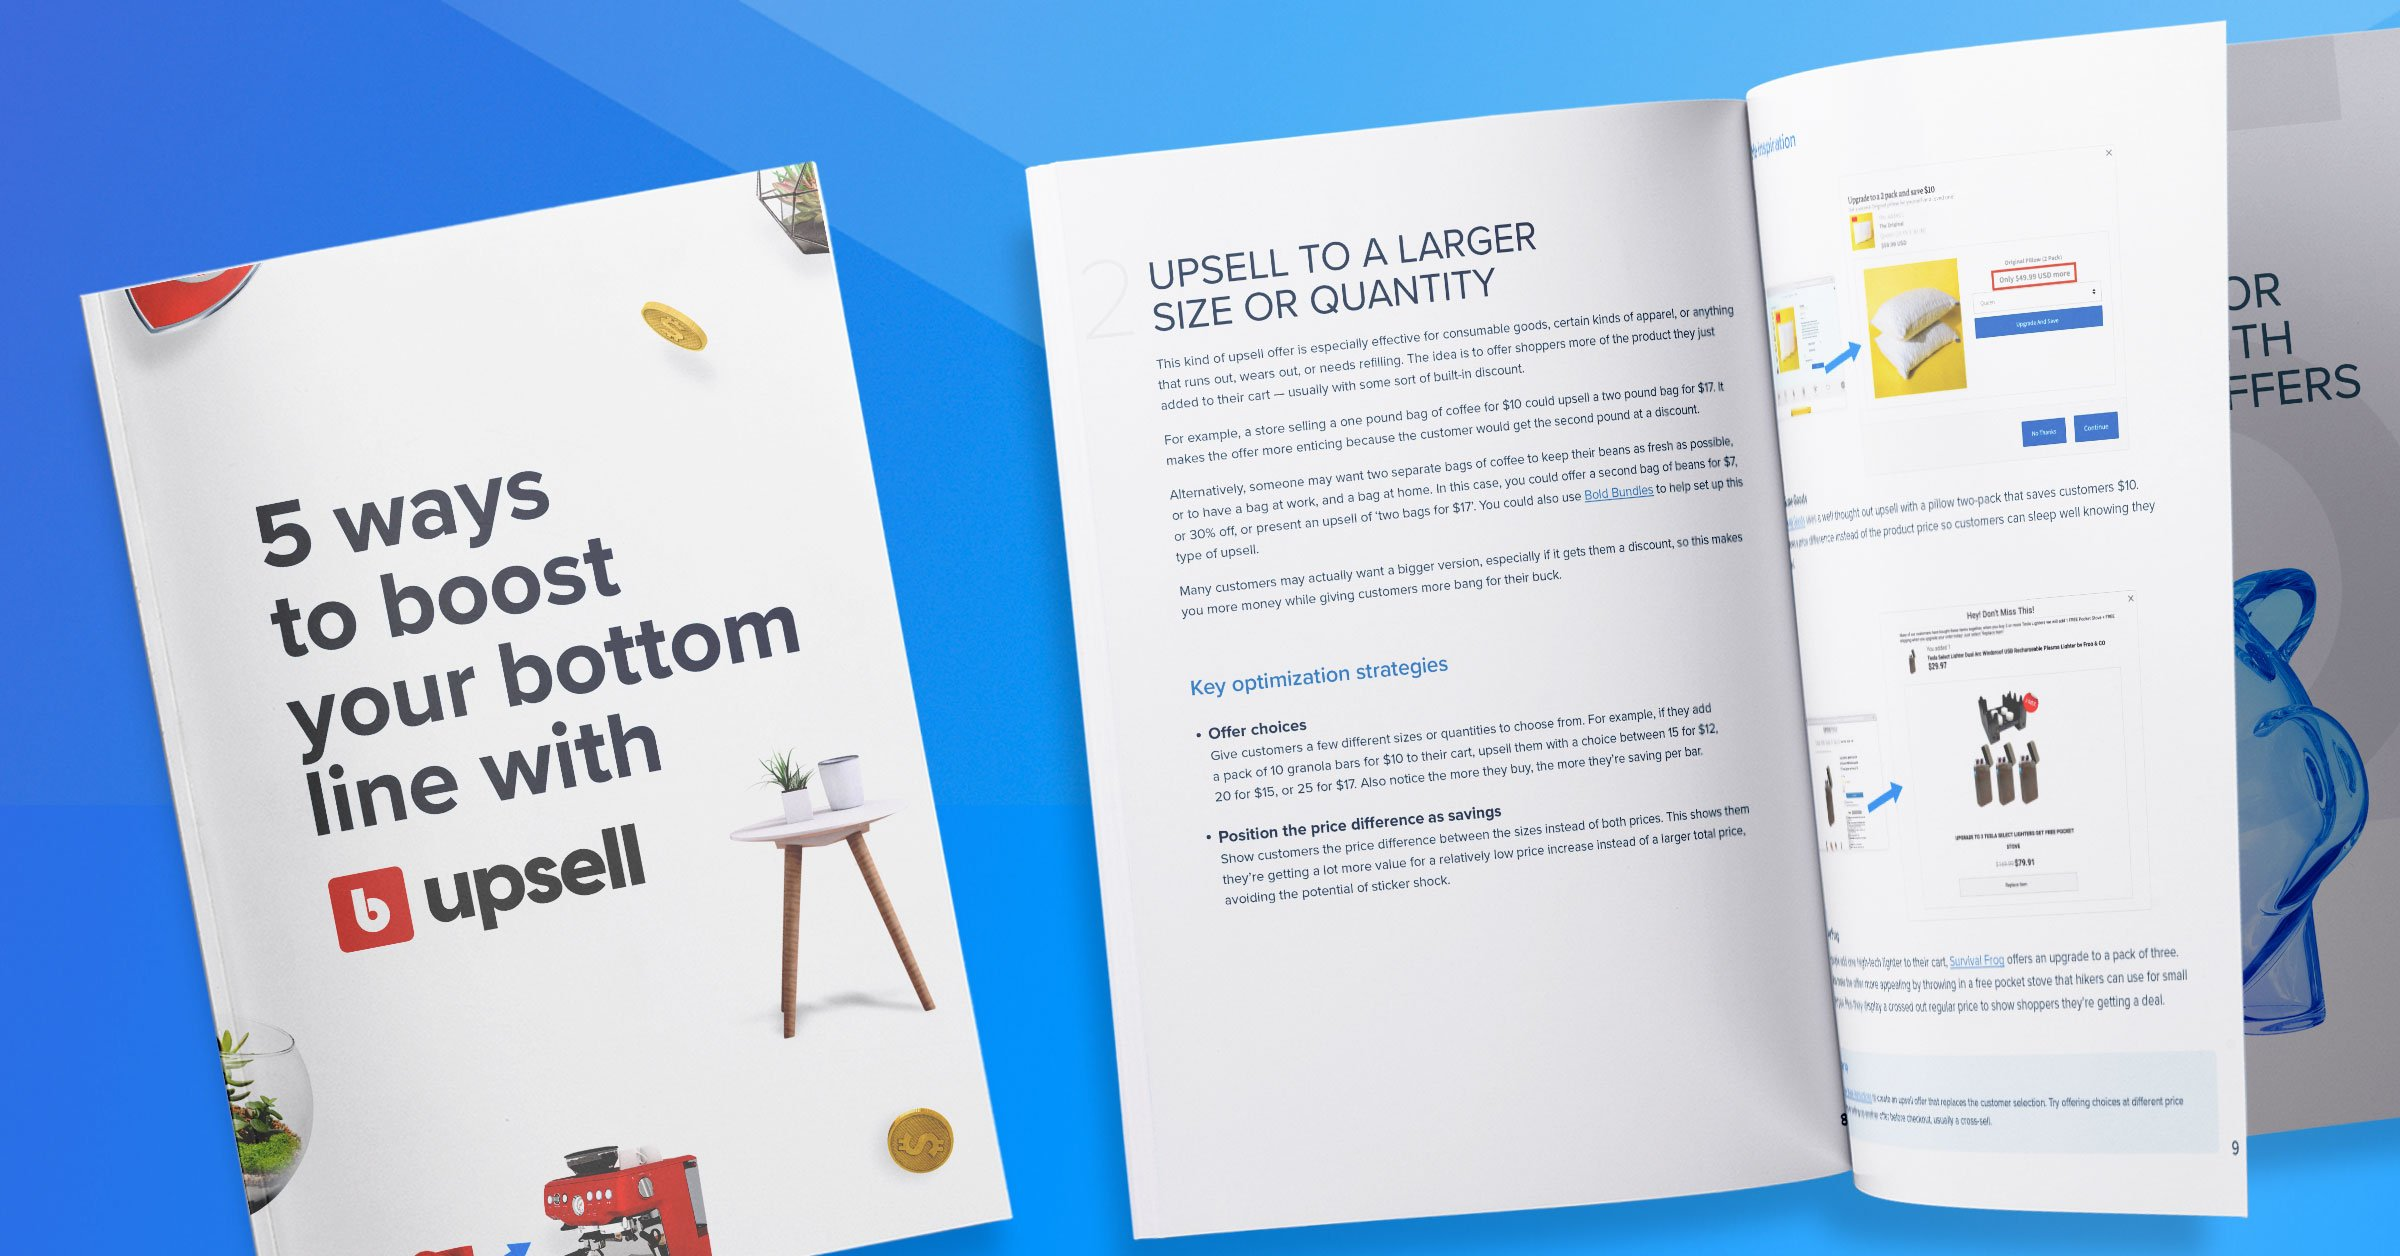 5 ways to boost your bottom line with Bold Upsell